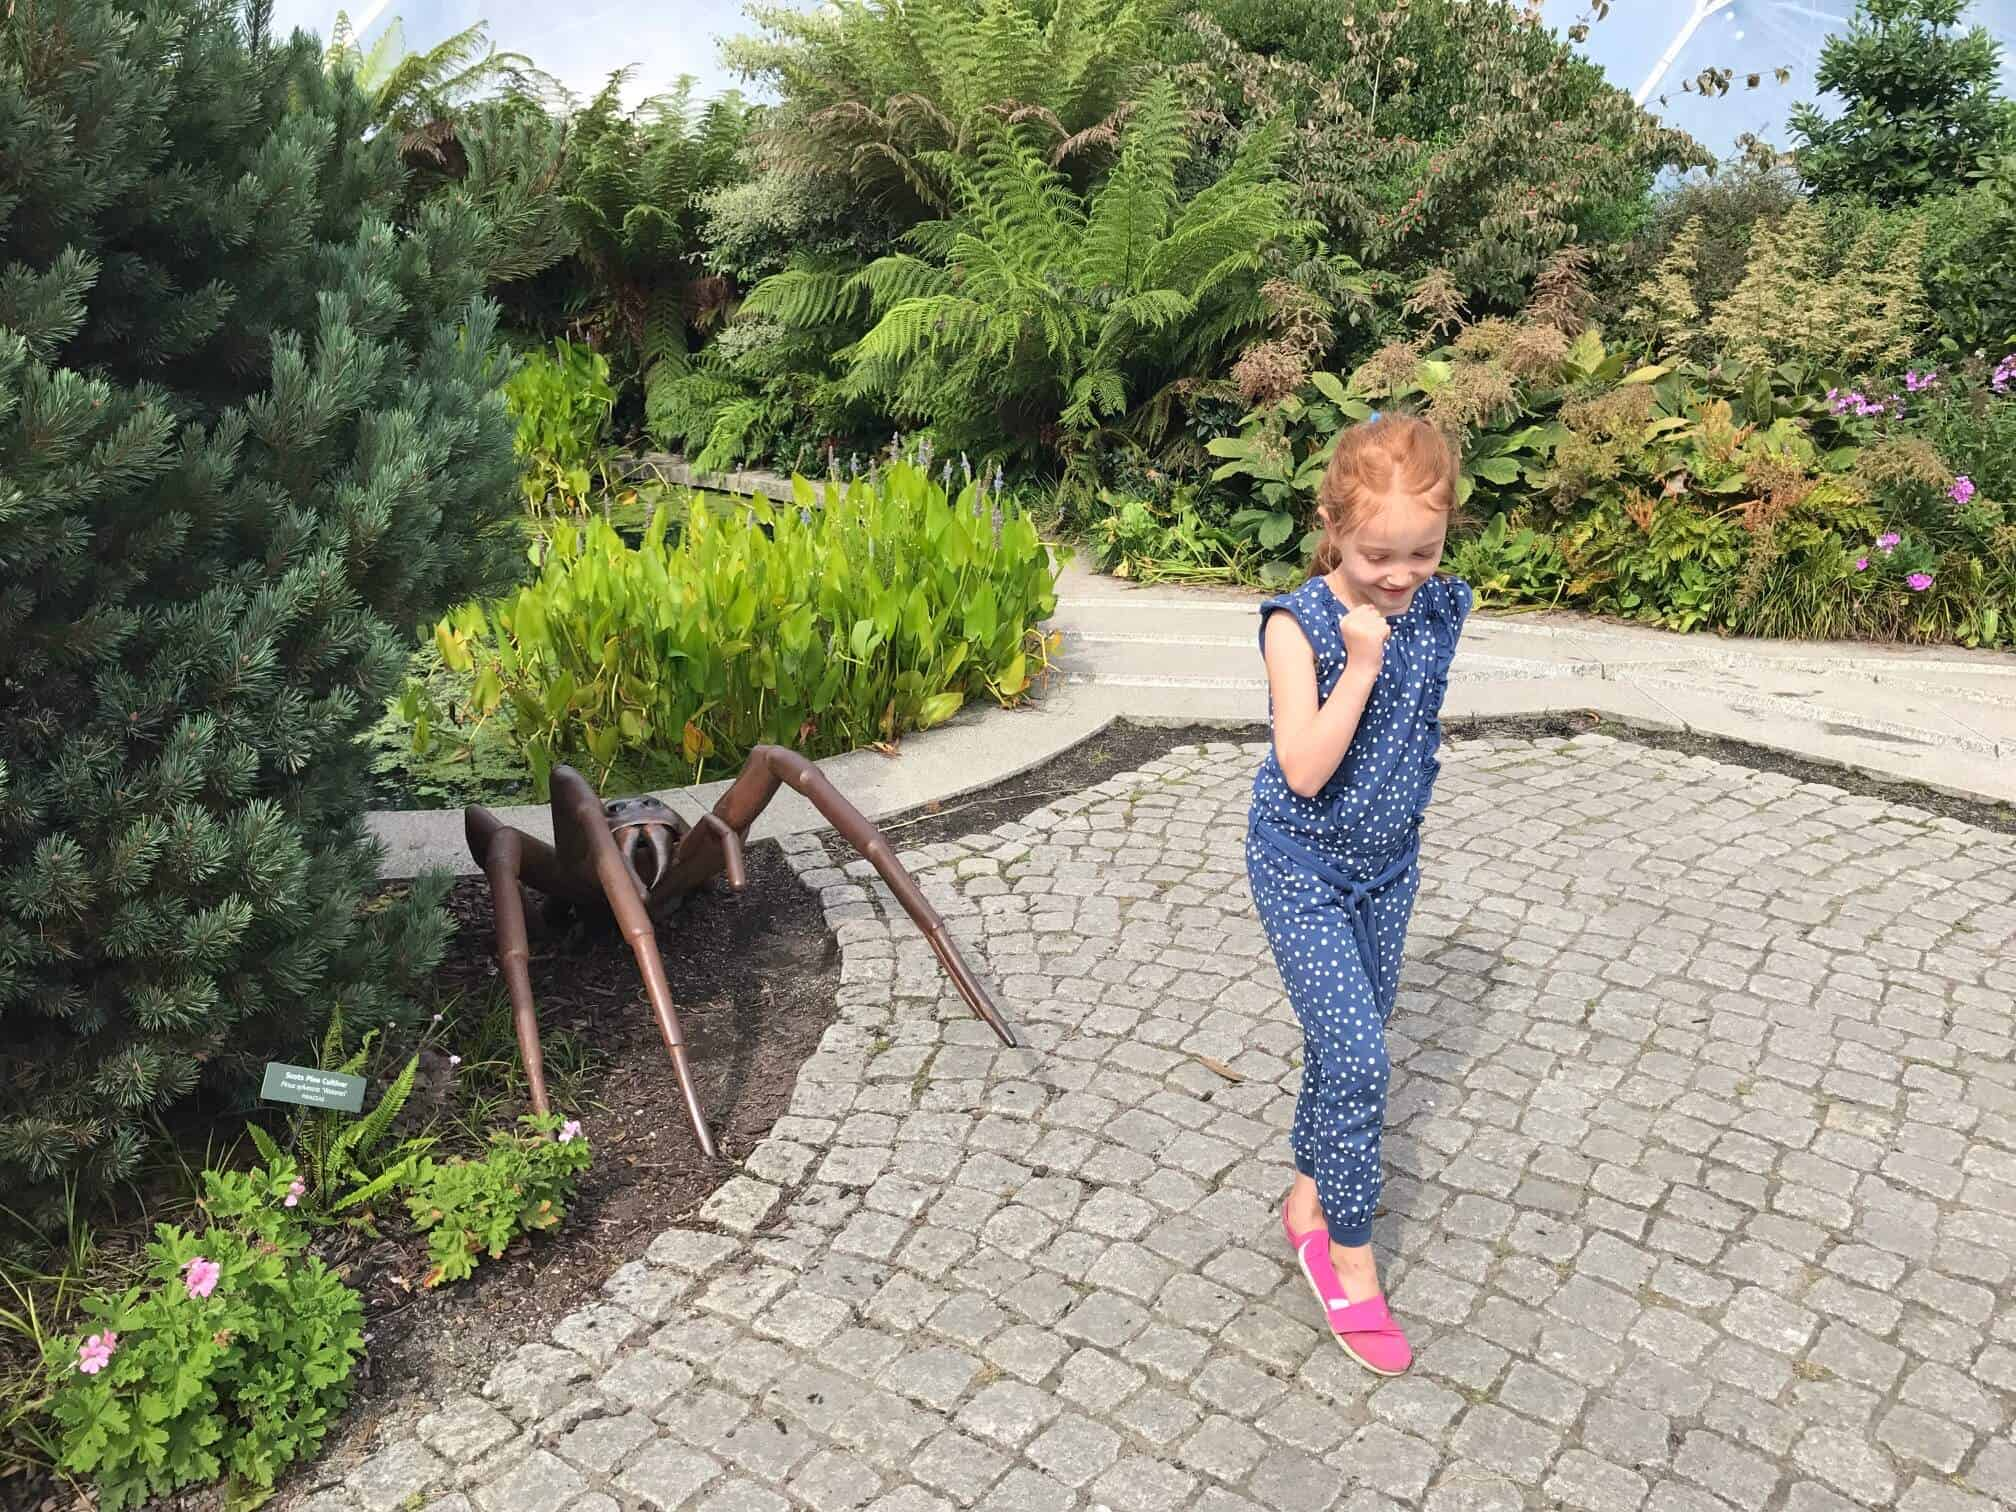 Ava running away from a giant spider